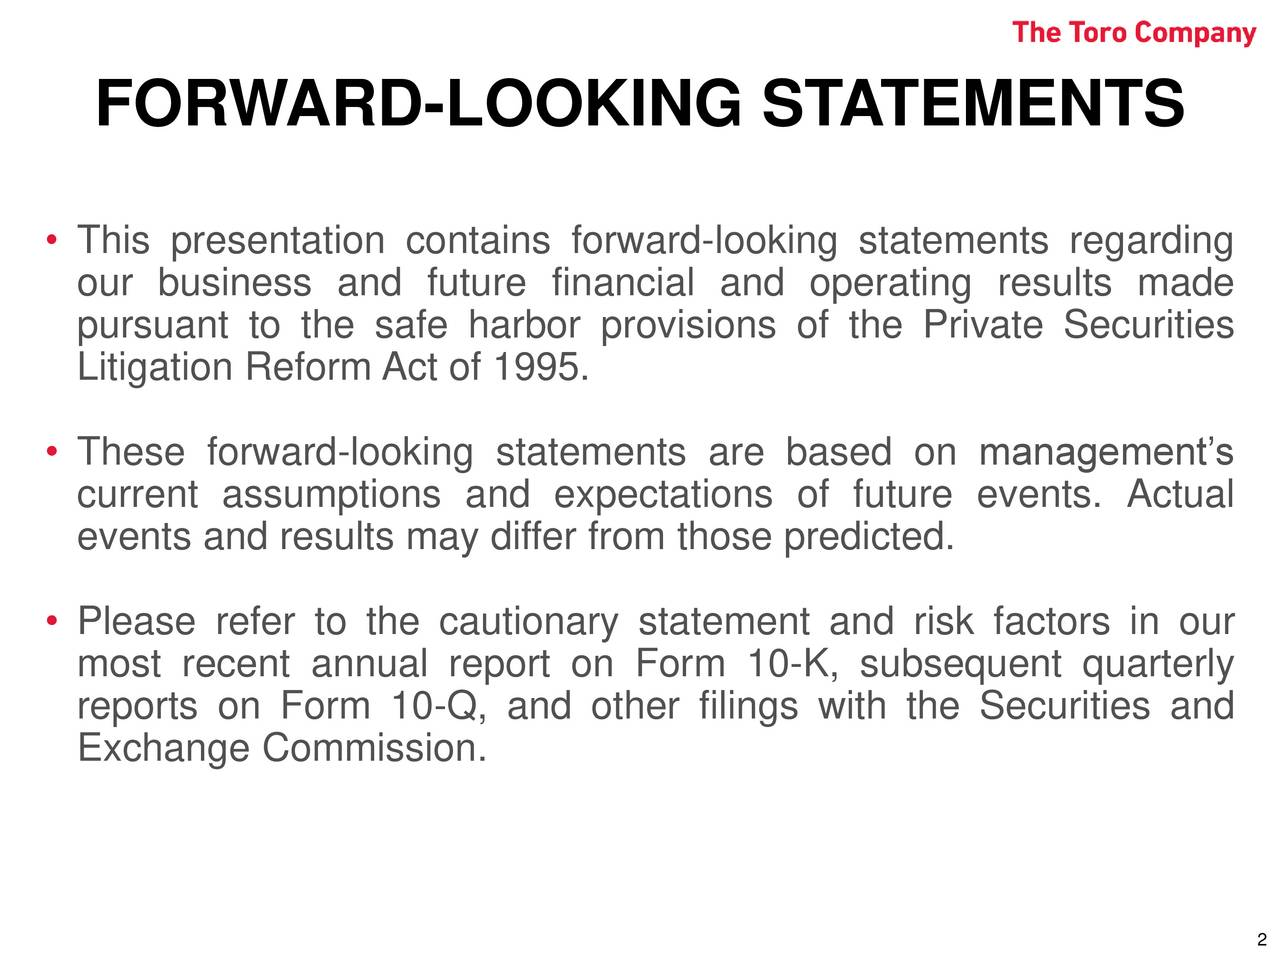 This presentation contains forward-looking statements regarding our business and future financial and operating results made pursuant to the safe harbor provisions of the Private Securities Litigation Reform Act of 1995. These forward-looking statements are based on managements current assumptions and expectations of future events. Actual events and results may differ from those predicted. Please refer to the cautionary statement and risk factors in our most recent annual report on Form 10-K, subsequent quarterly reports on Form 10-Q, and other filings with the Securities and Exchange Commission.